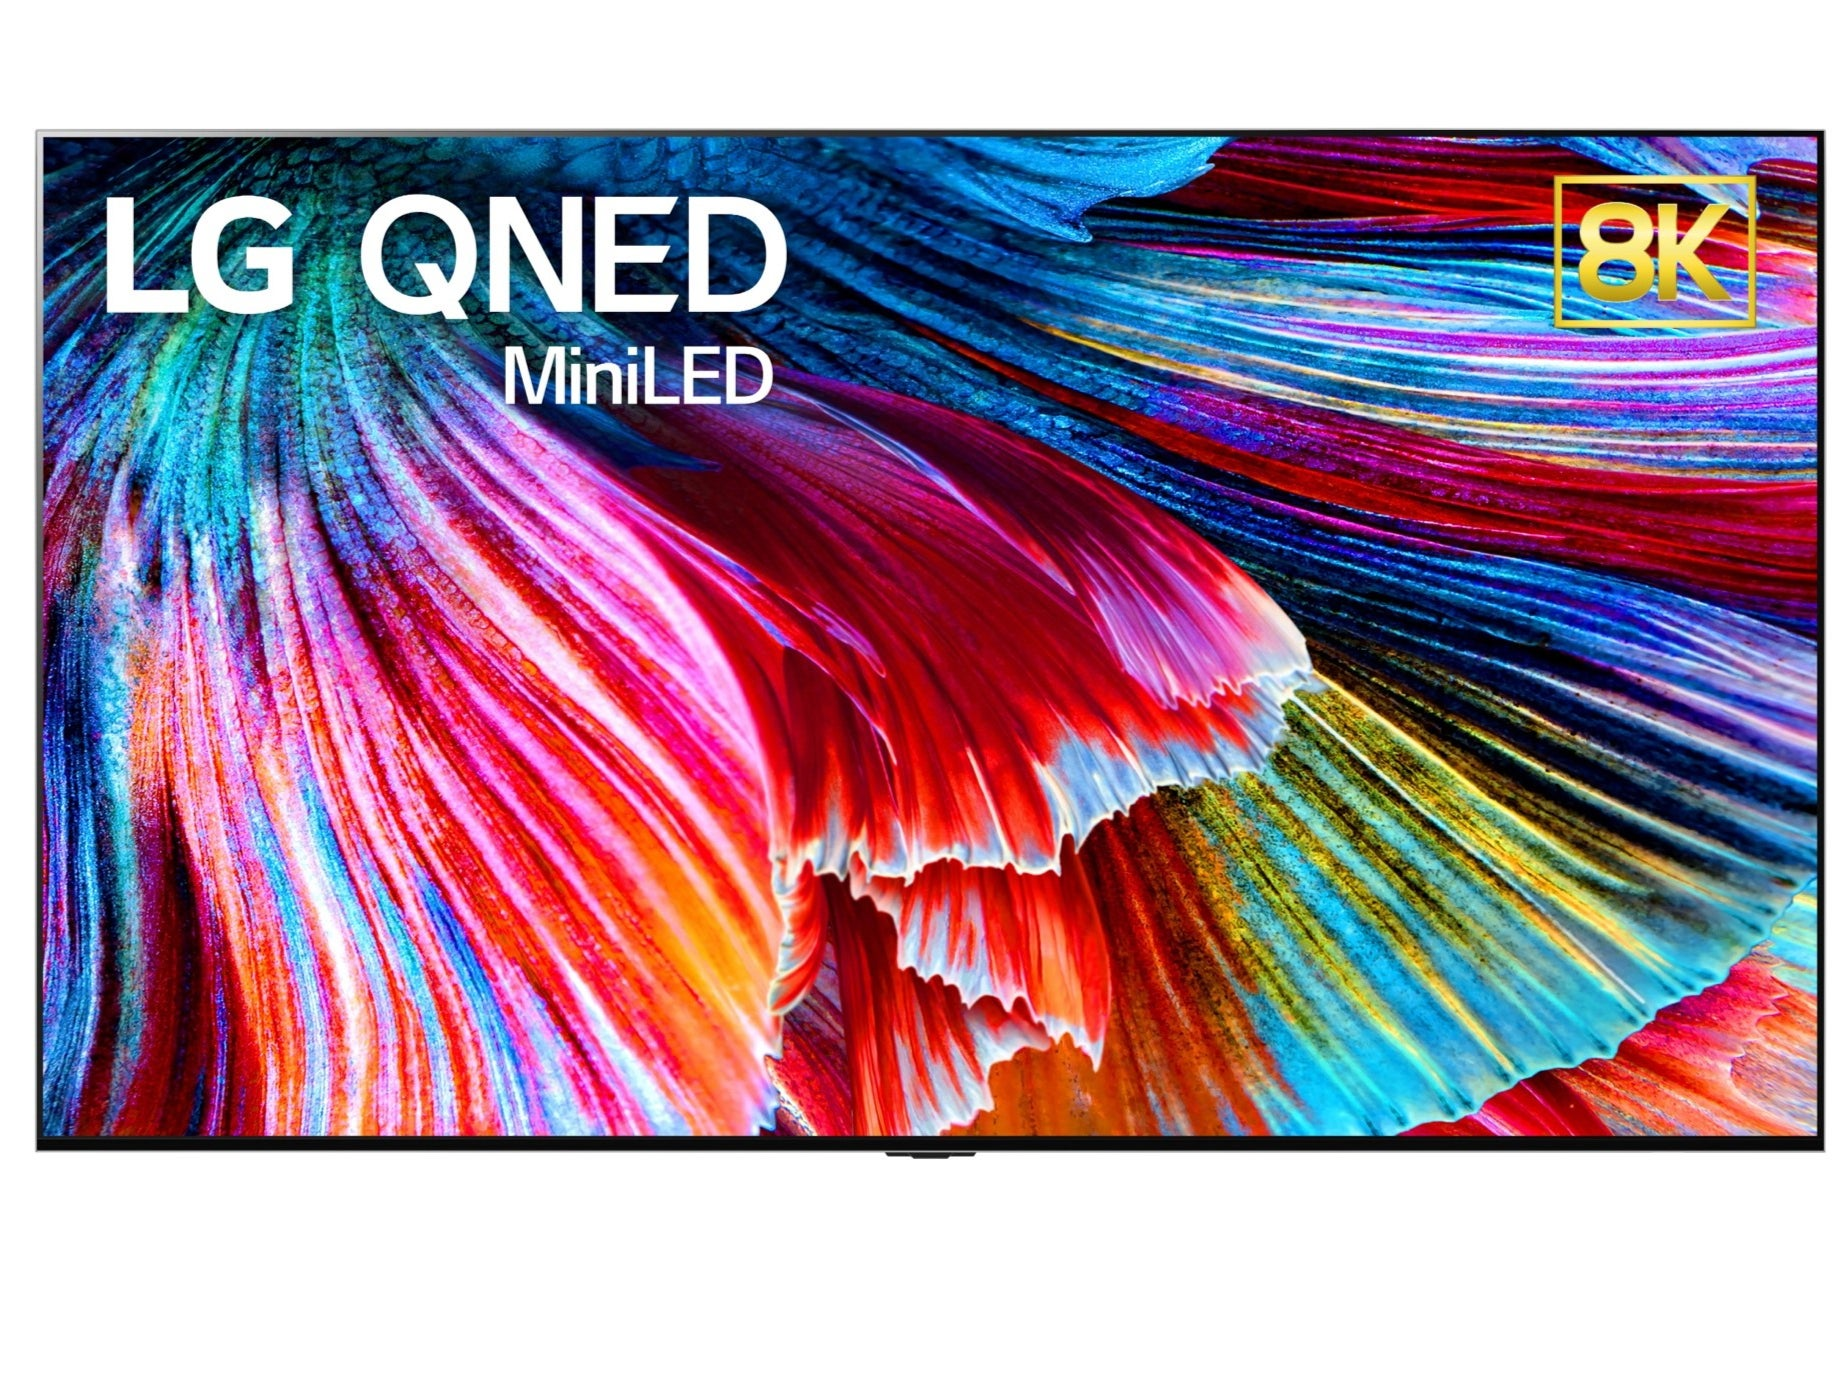 Image of article 'LG launches perplexing new TV technology'